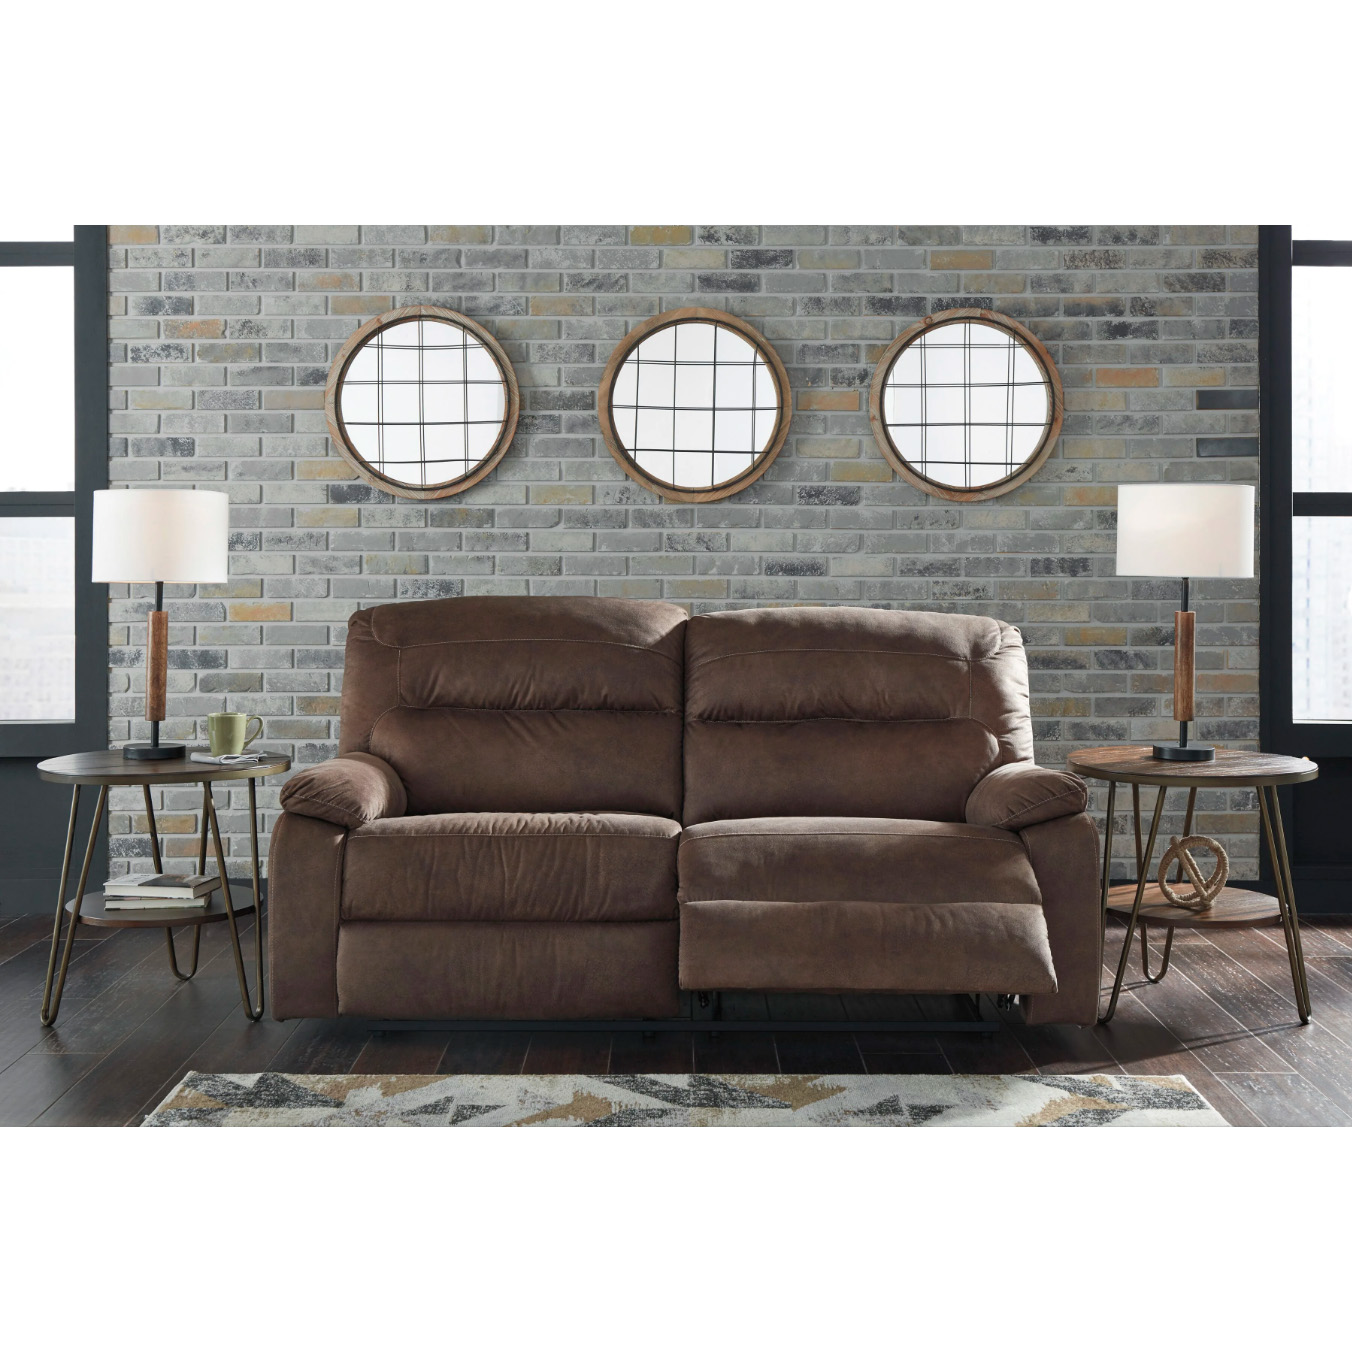 Bolzano - Coffee - 2 Seat Reclining Sofa